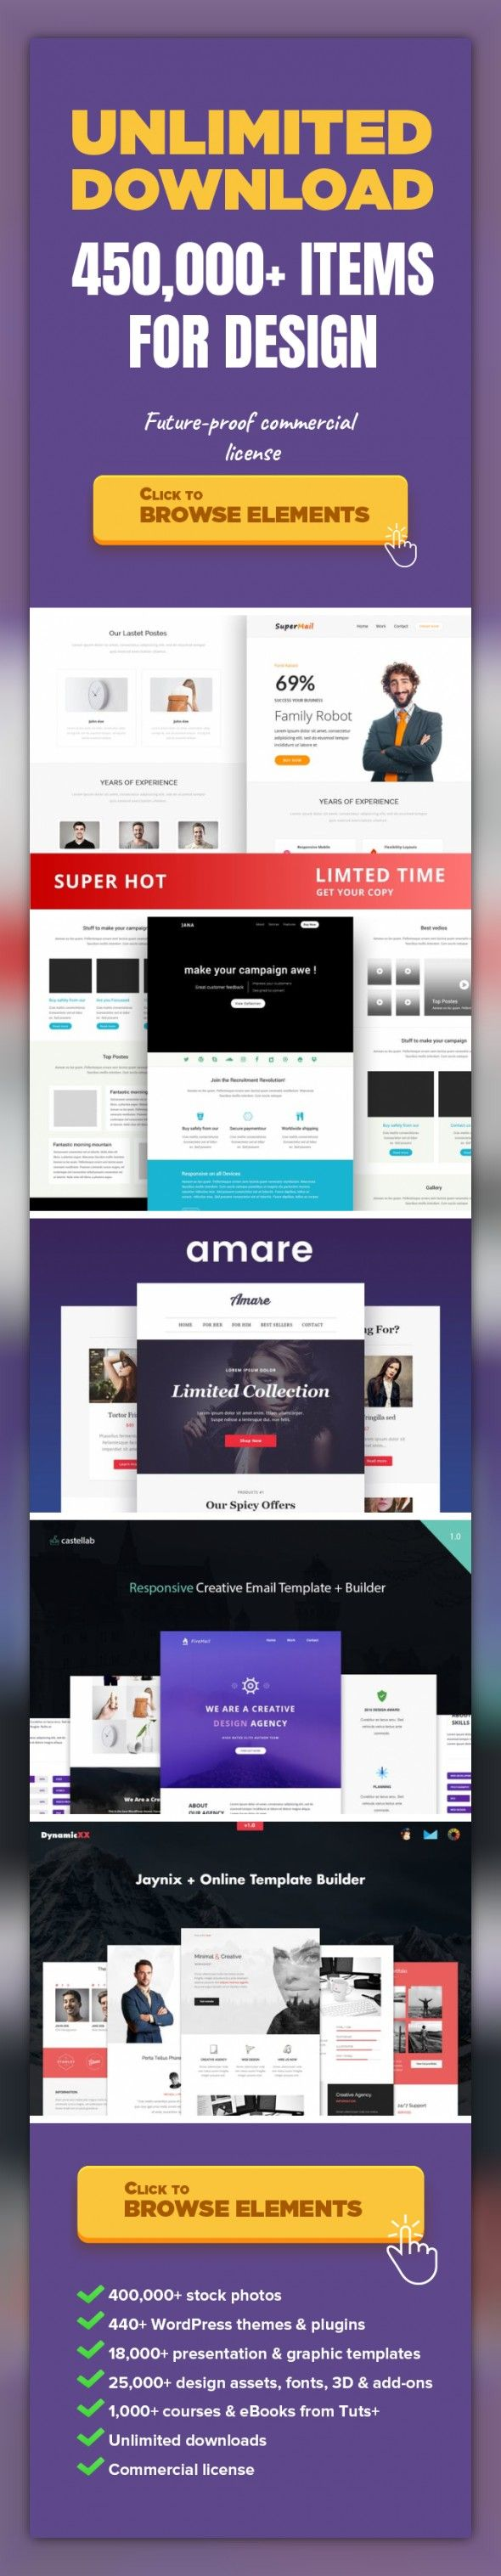 Very creative template, I guess | Responsive templates | Pinterest